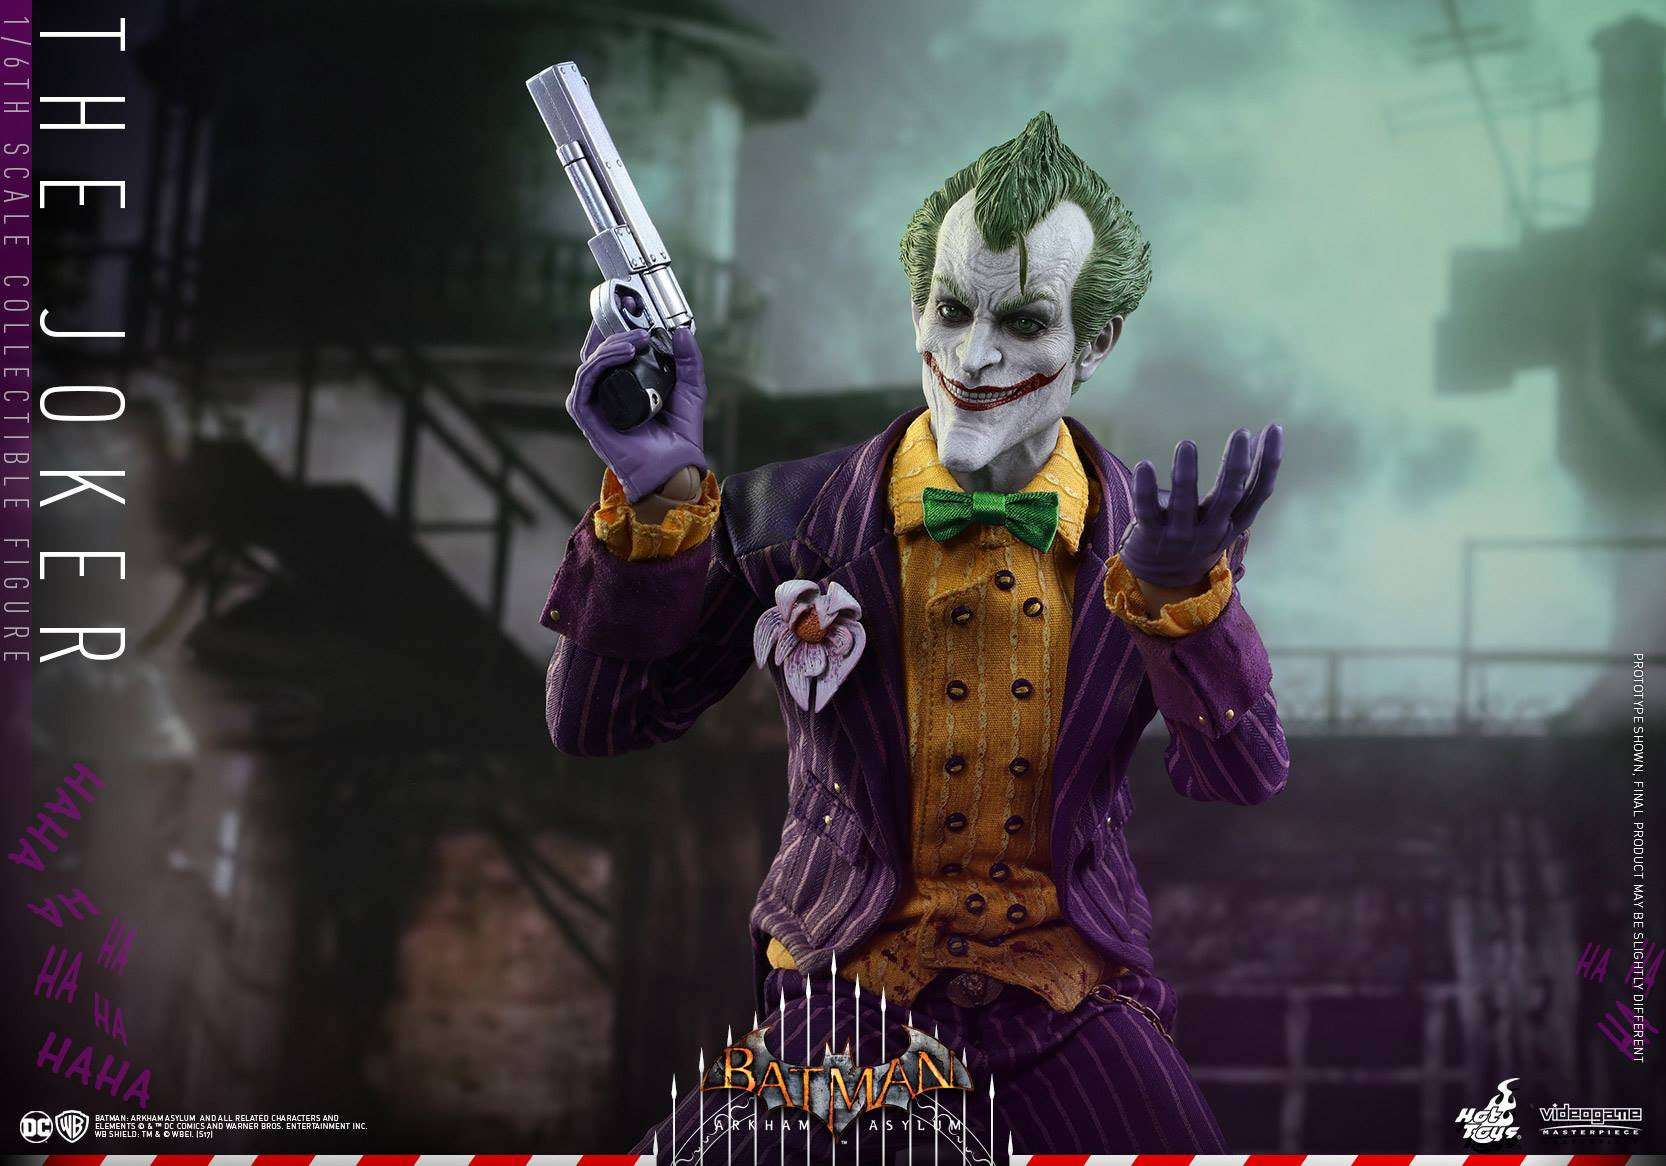 Hot Toys - VGM27 - Batman: Arkham Asylum - The Joker - Marvelous Toys - 21